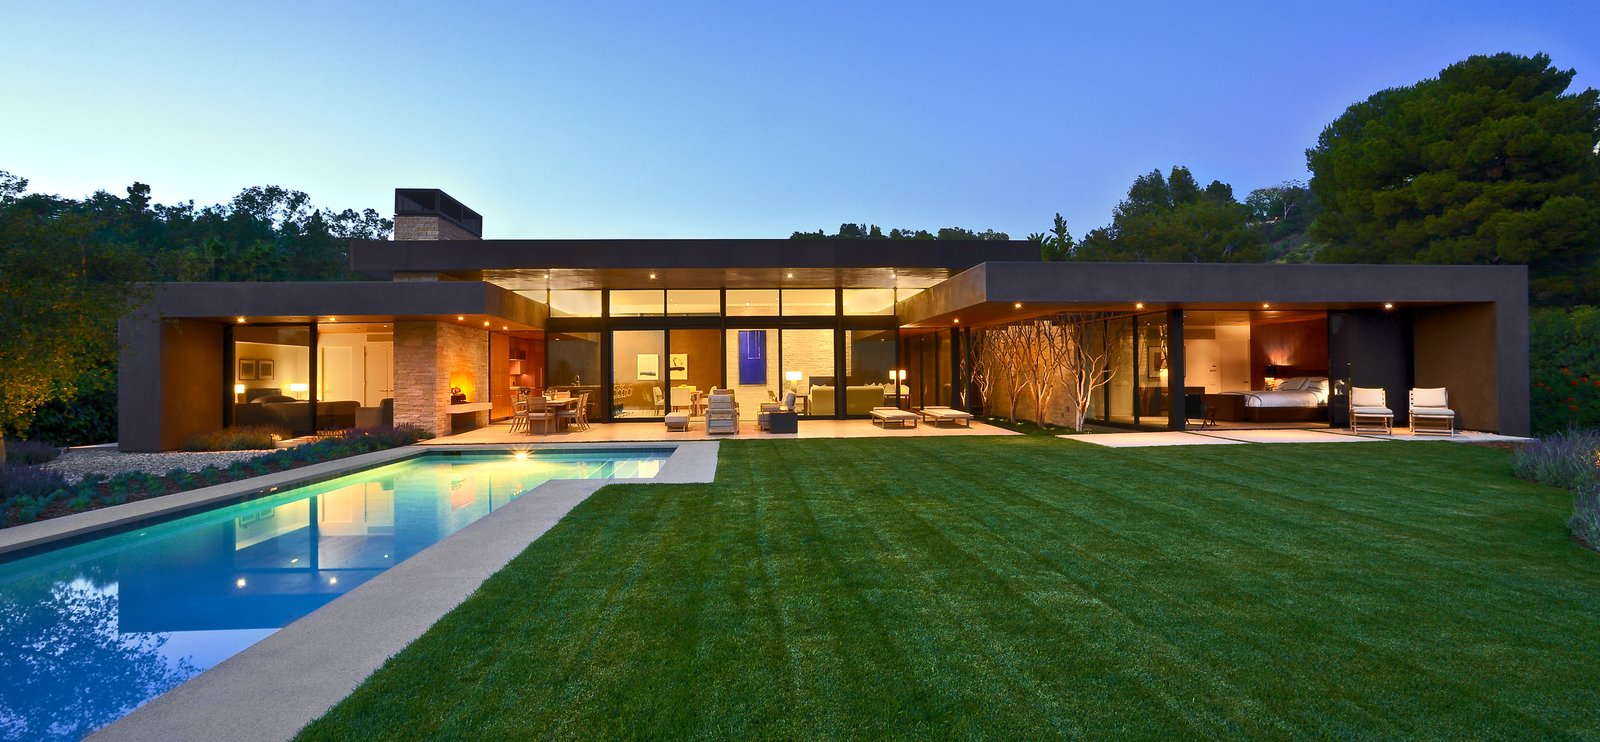 Trousdale residence modern home in beverly hills - Casa campo y jardin ...